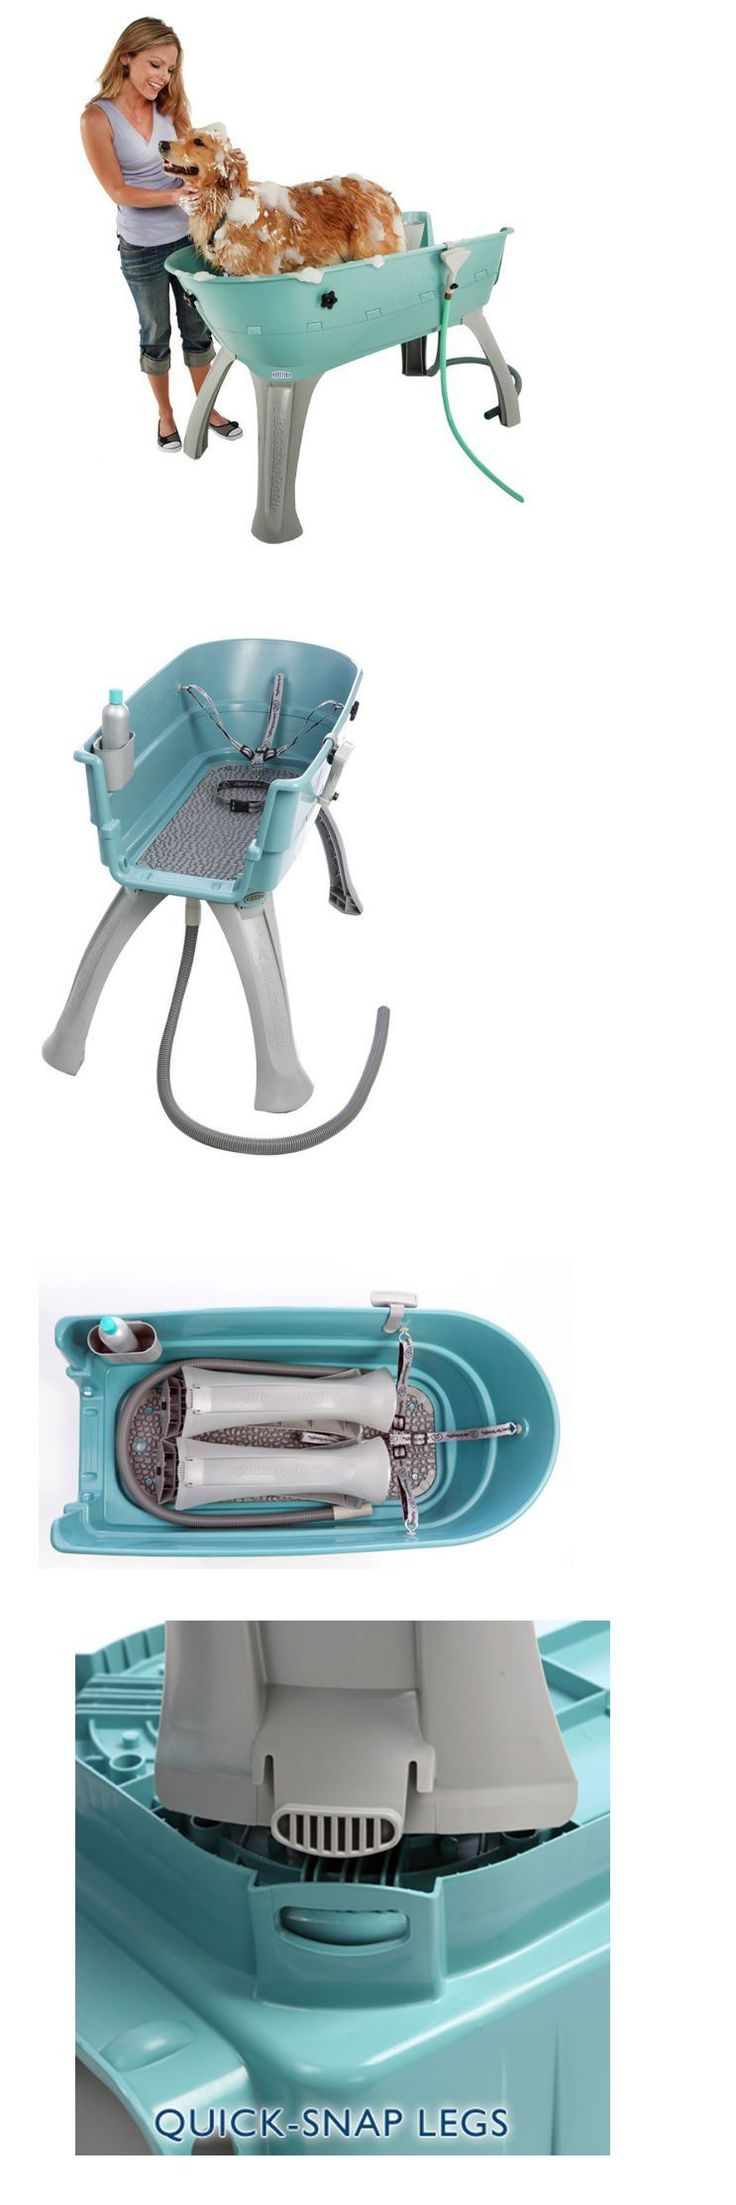 Shampooing and washing 149019 mobile dog grooming bath shower table equipment station pet elevated booster